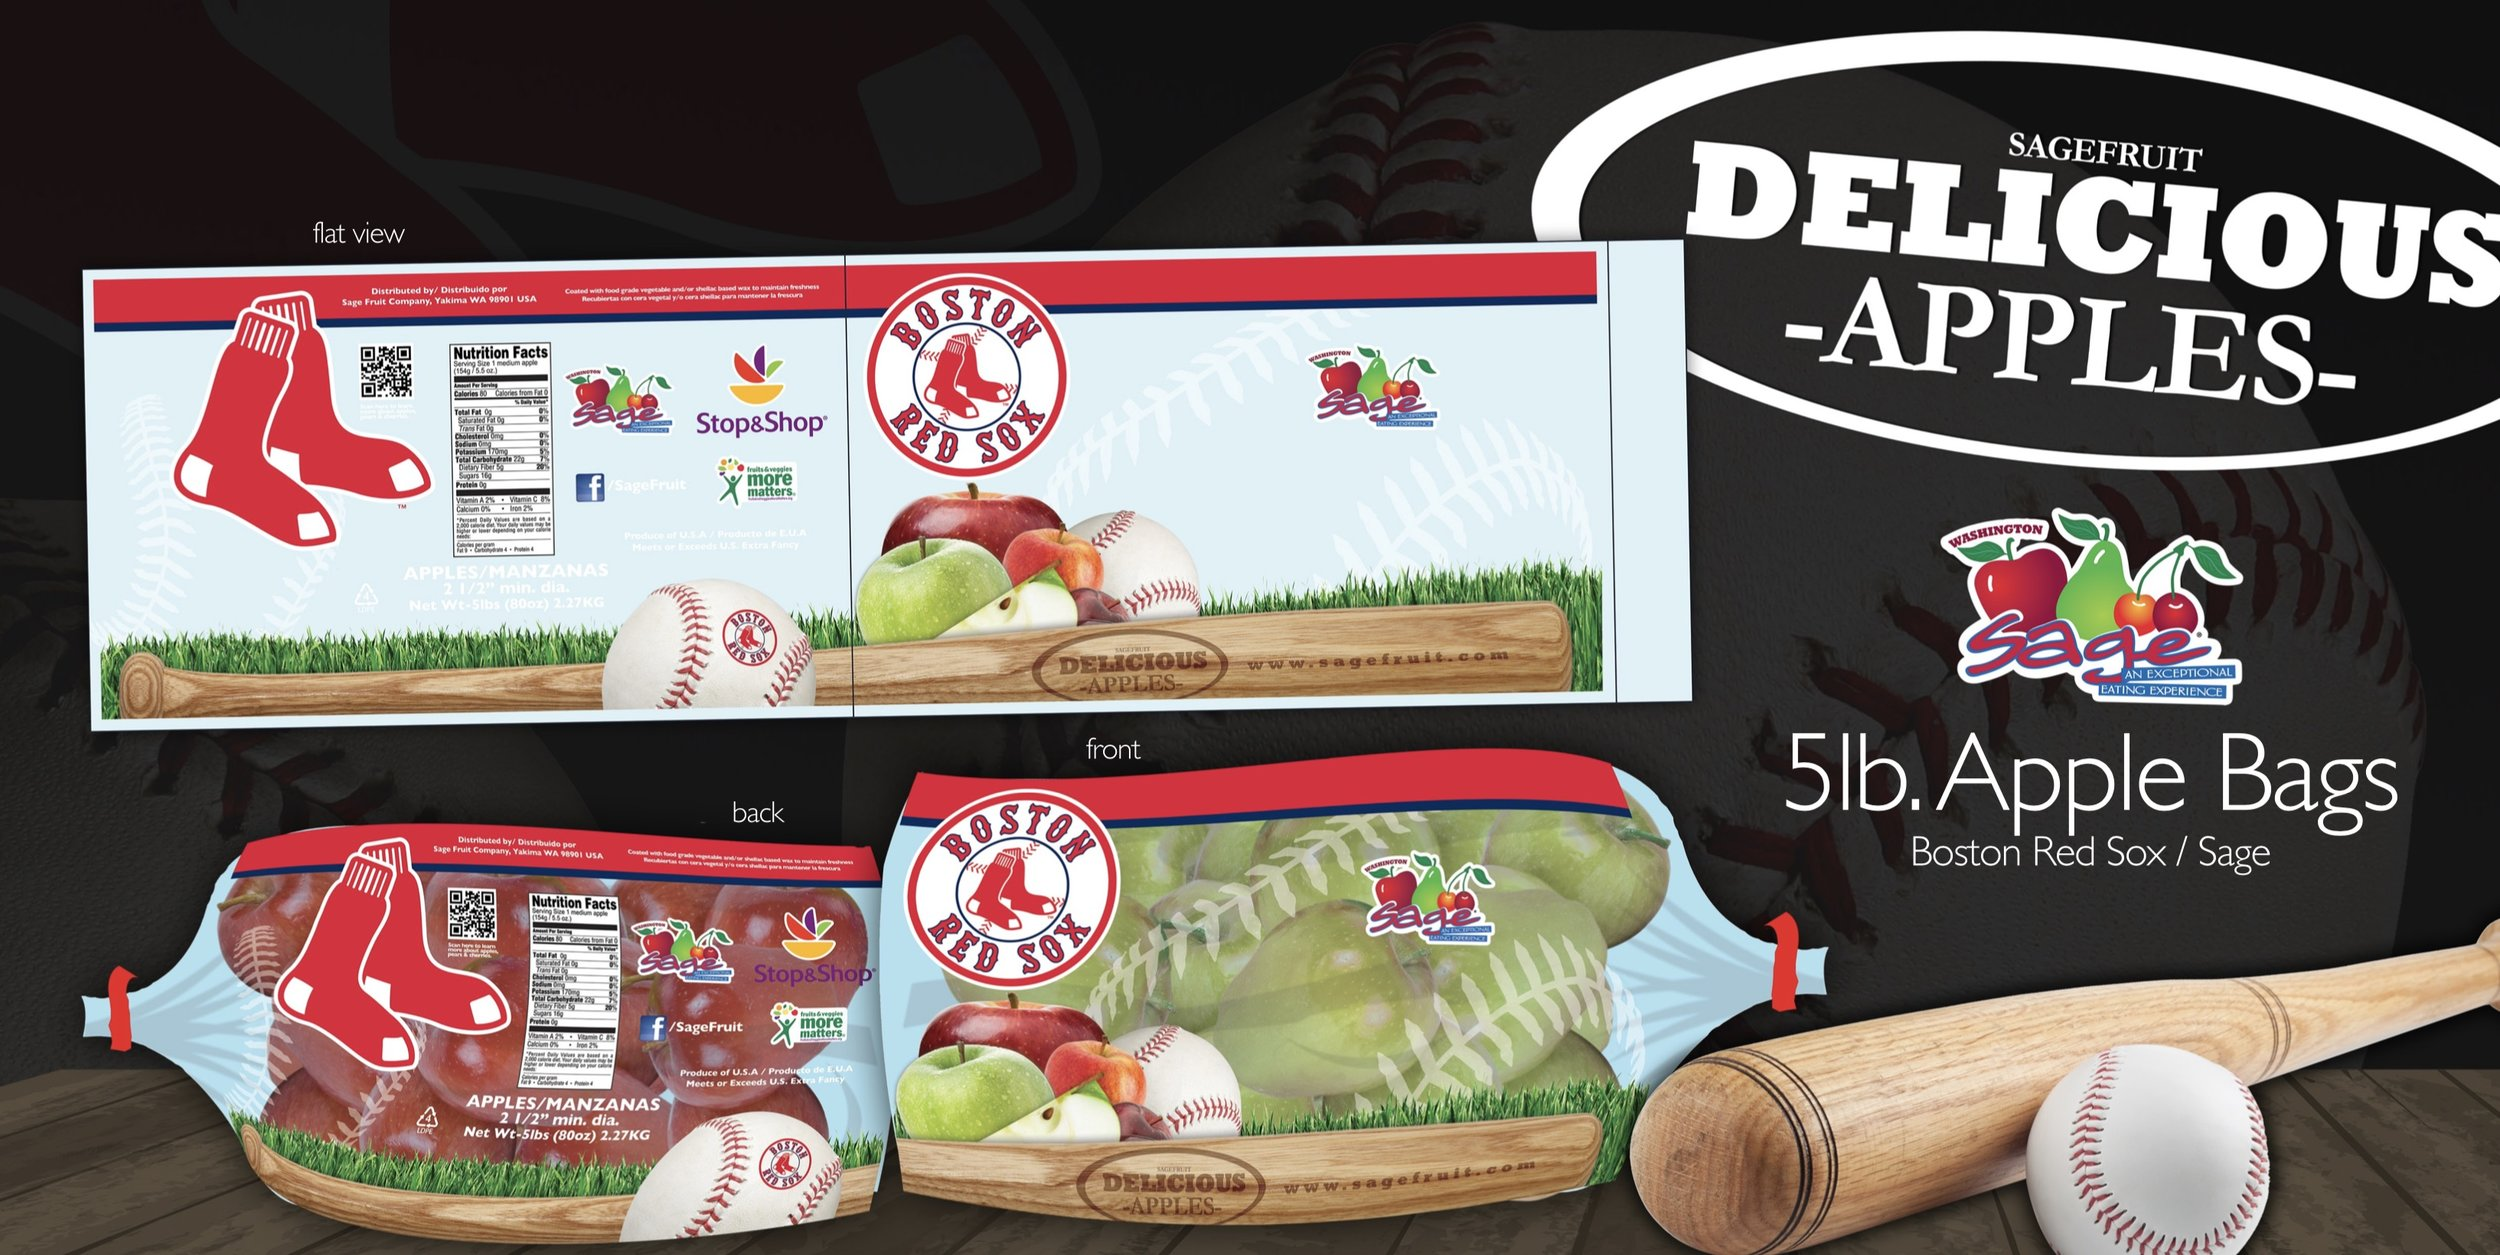 Apple packaging designed for Sage Fruit Company in collaboration with the Boston Red Sox.